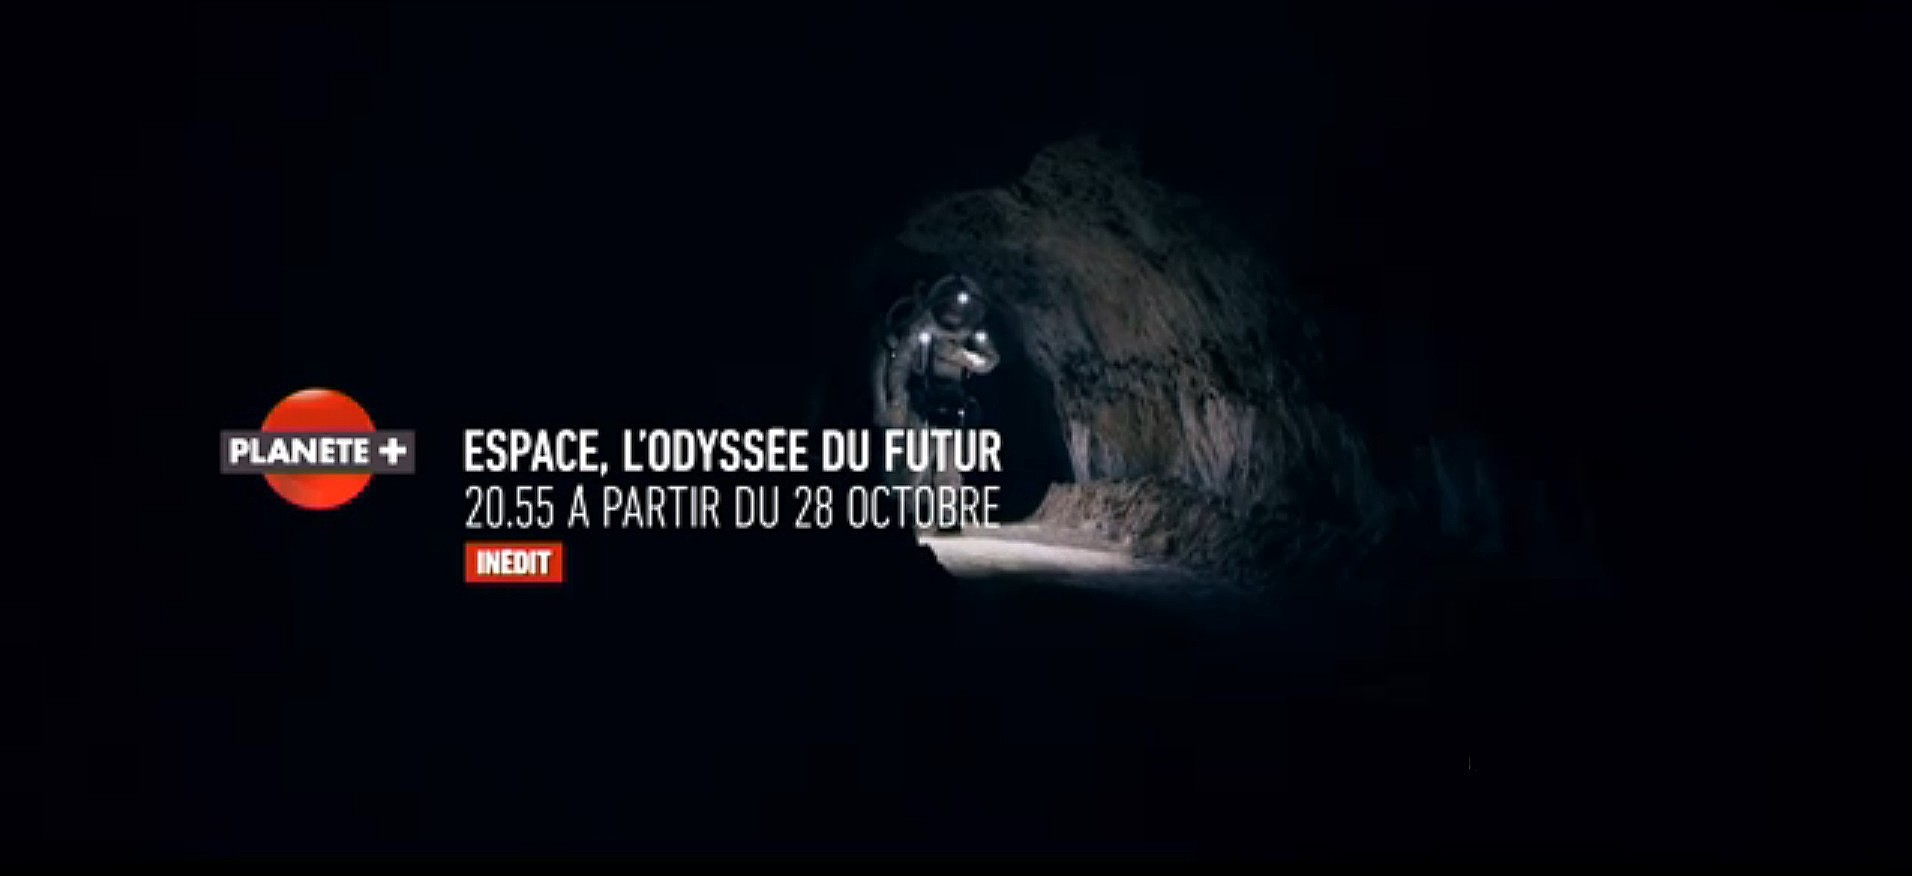 grotte-1-grd-format